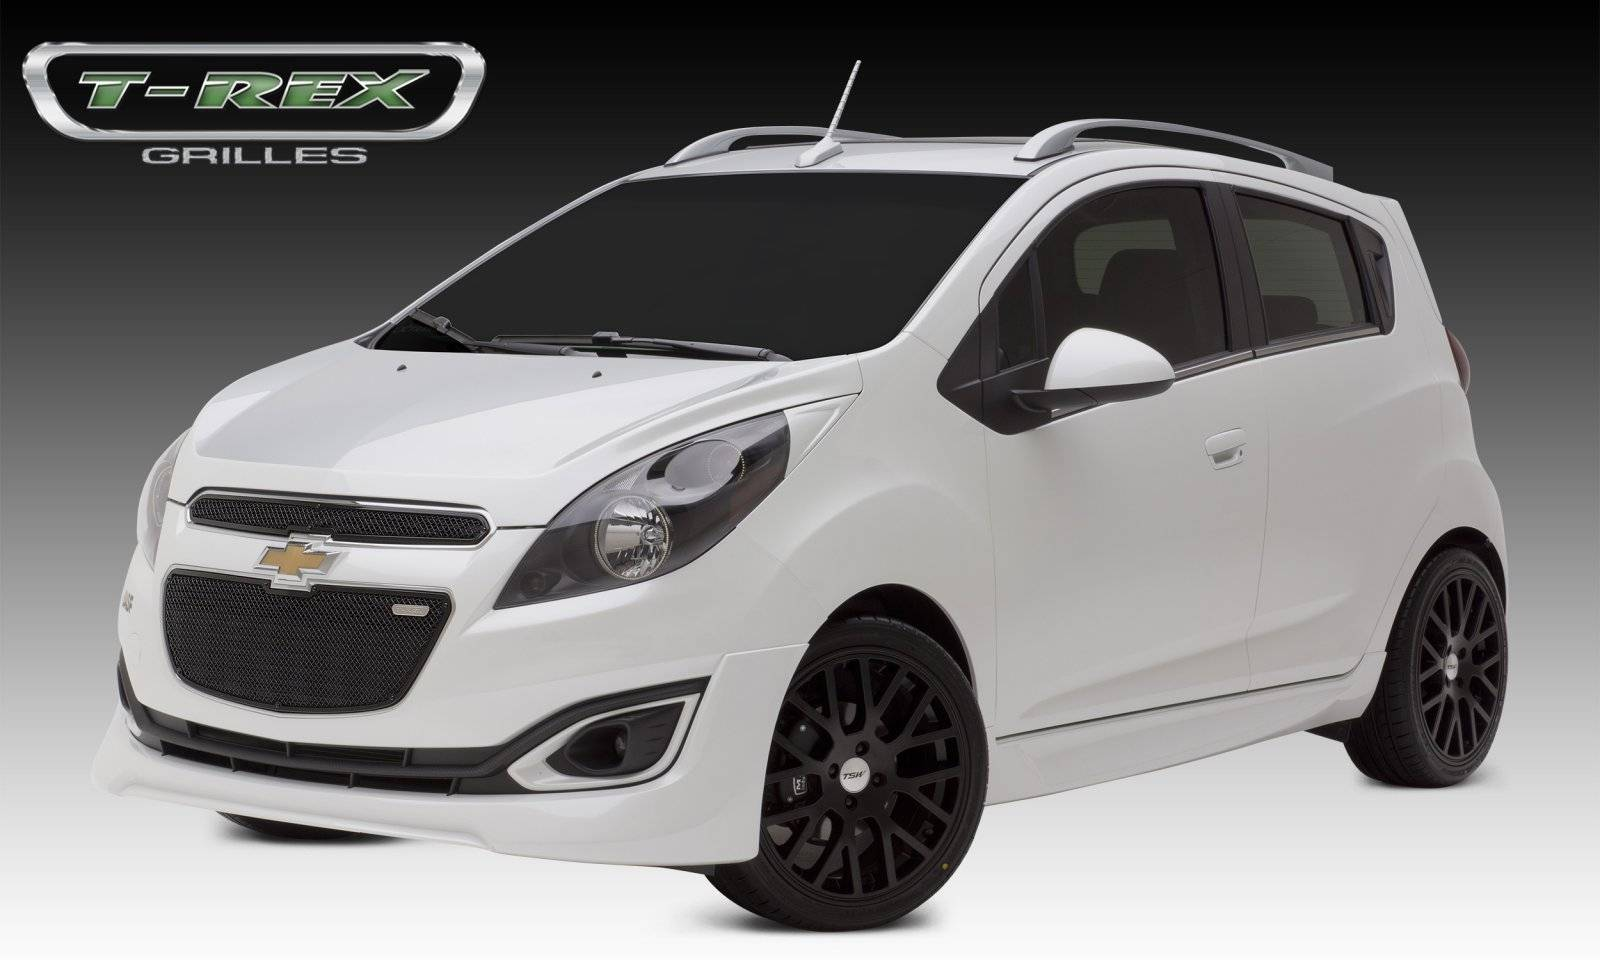 T-REX Grilles - Chevrolet Spark Upper Class Stainless Mesh Grille - 2 Pc's Top & Bottom - All Black - Pt # 51129